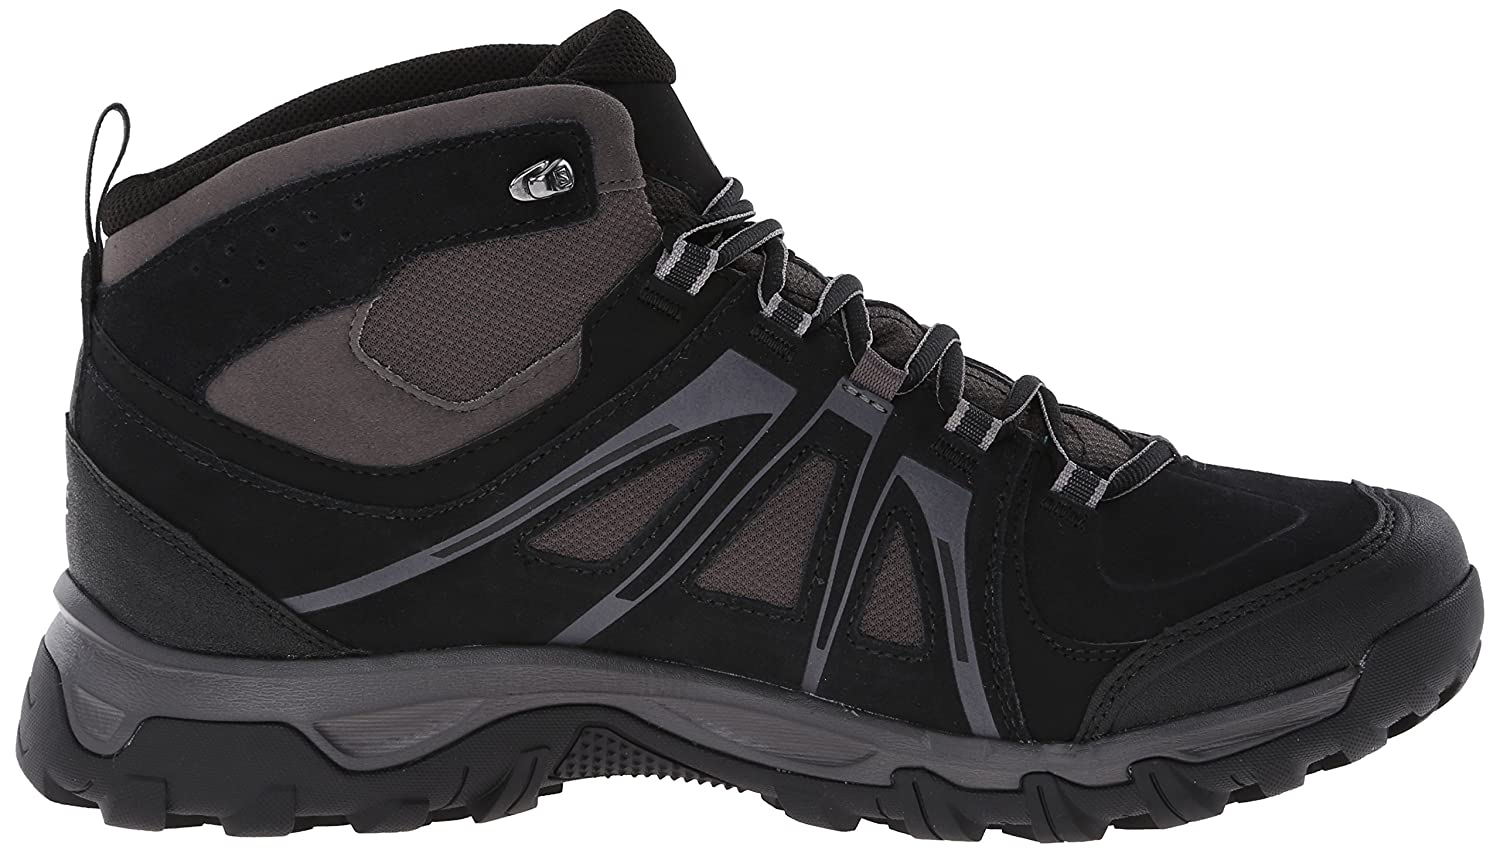 2b440afdfb1a Salomon Men s Evasion Mid GTX Hiking Boot  Amazon.co.uk  Shoes   Bags